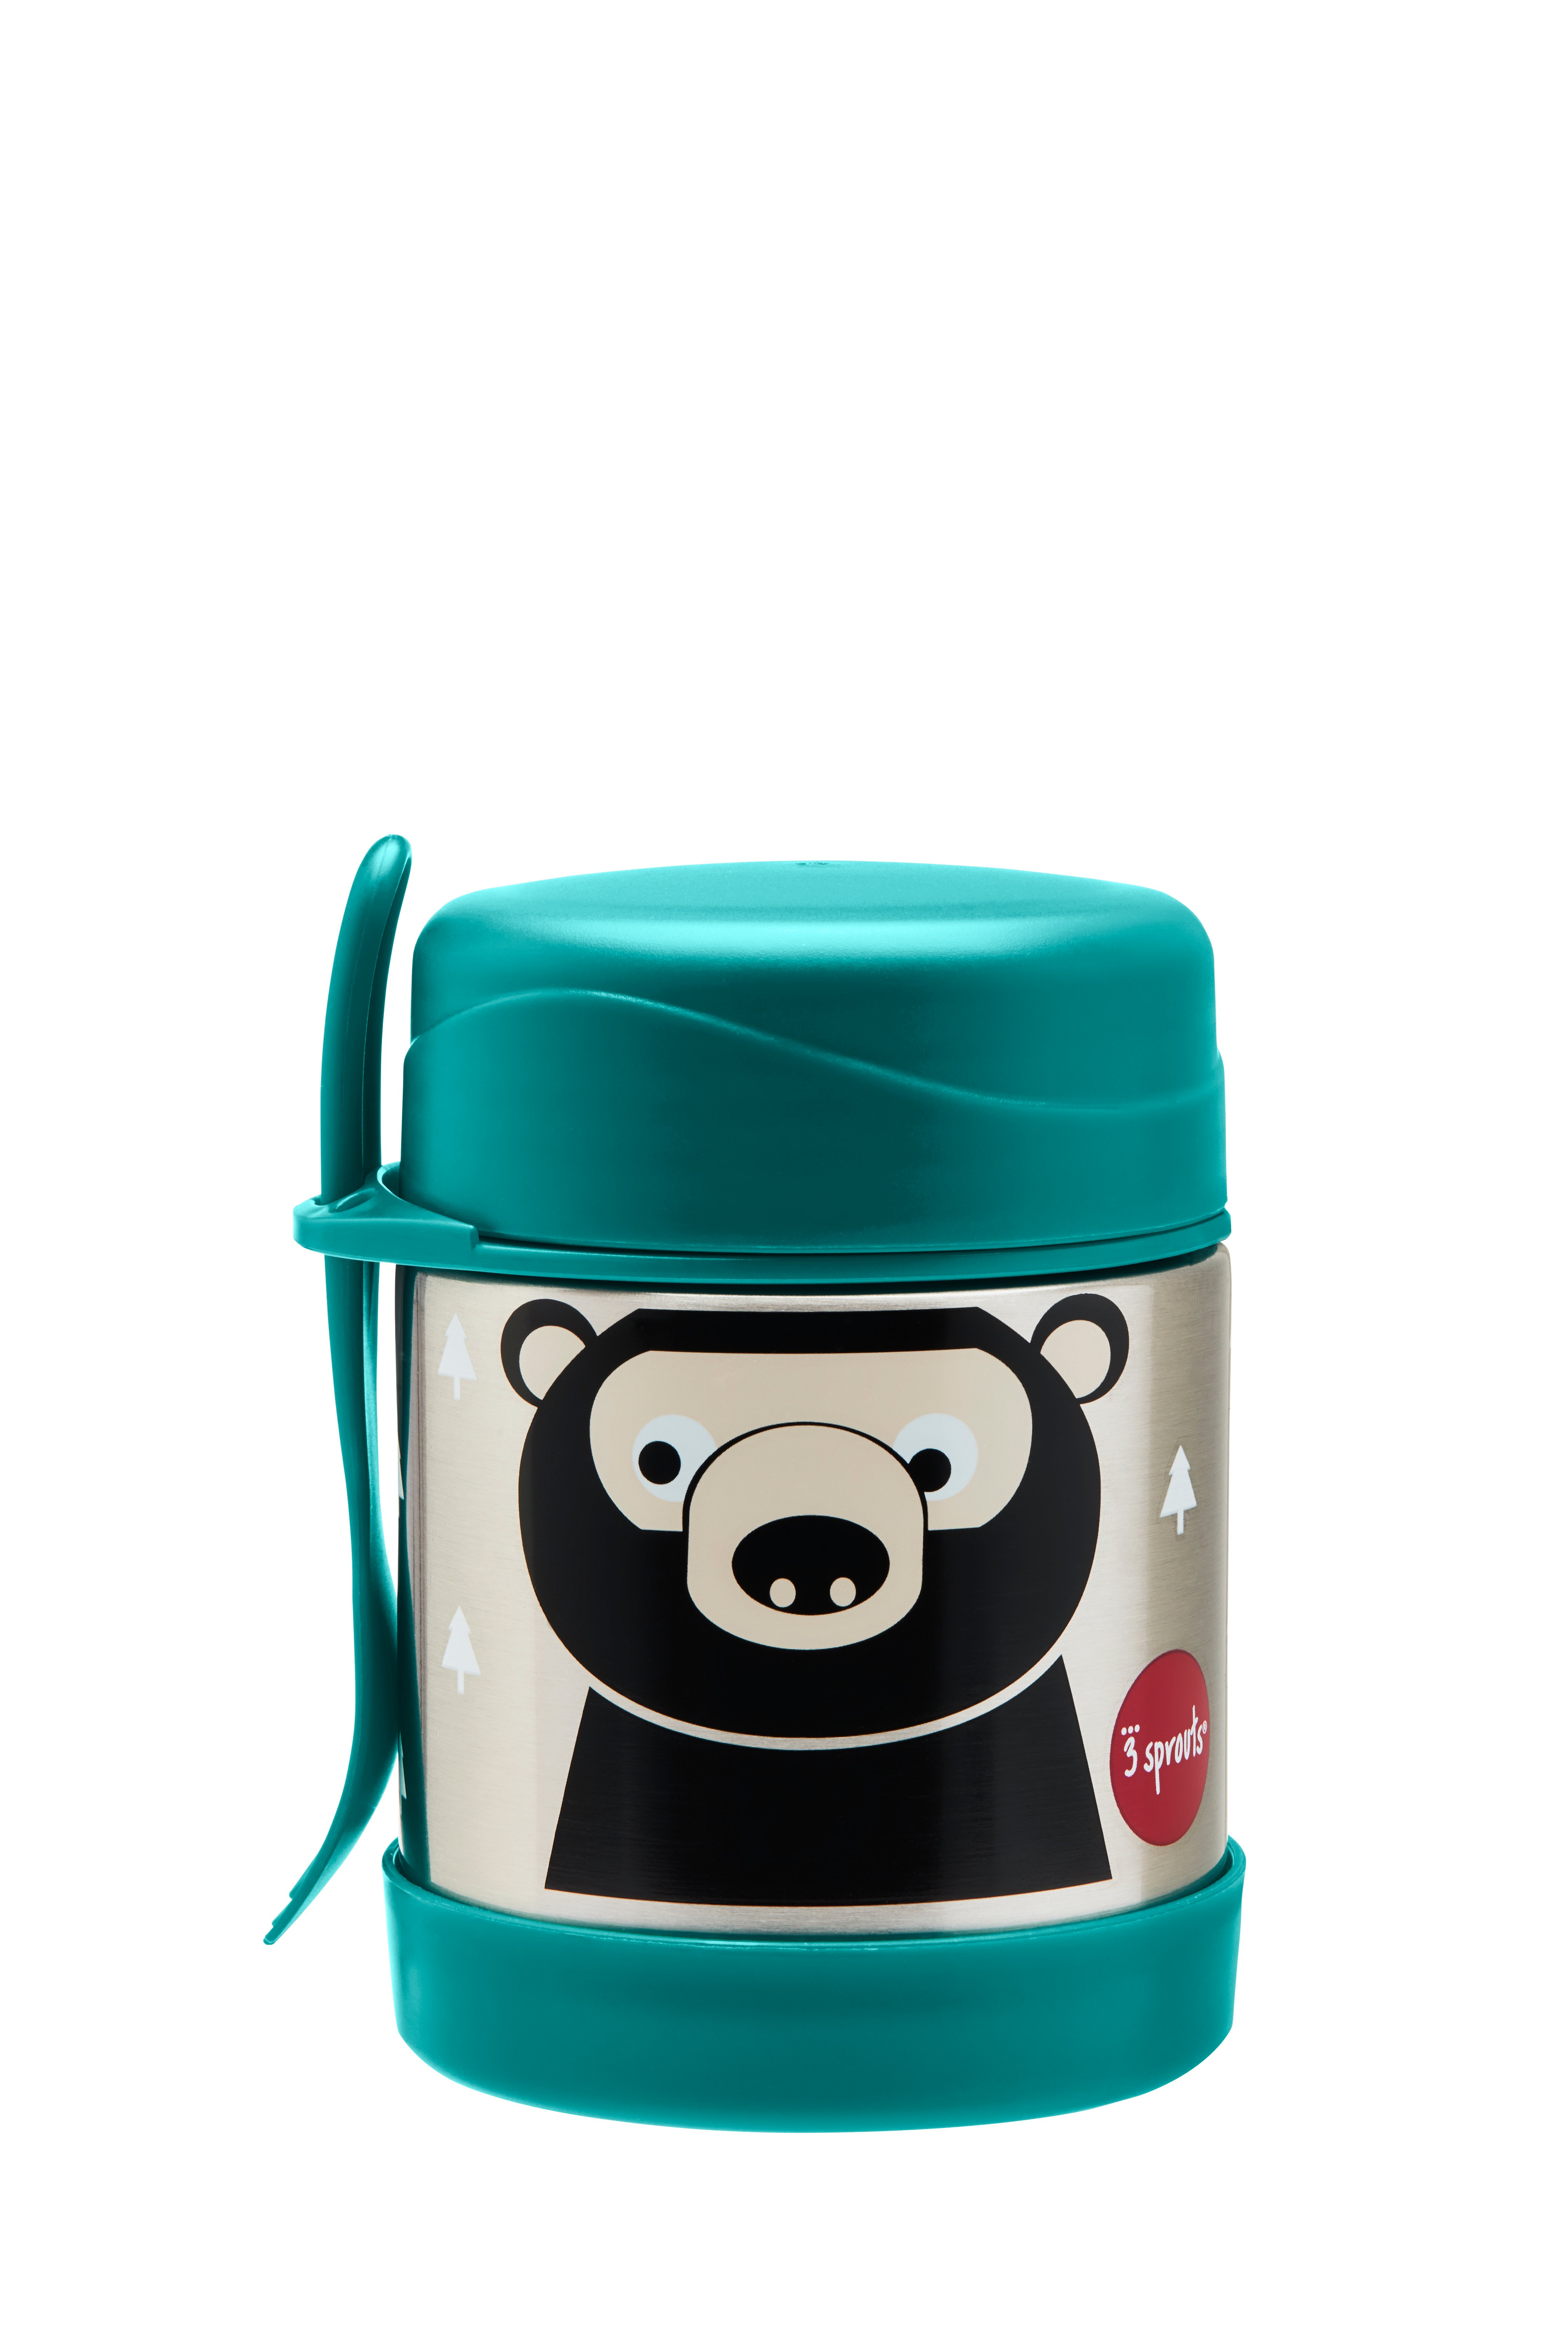 3 Sprouts - Stainless Steel Food Jar and Spork - Teal Bear